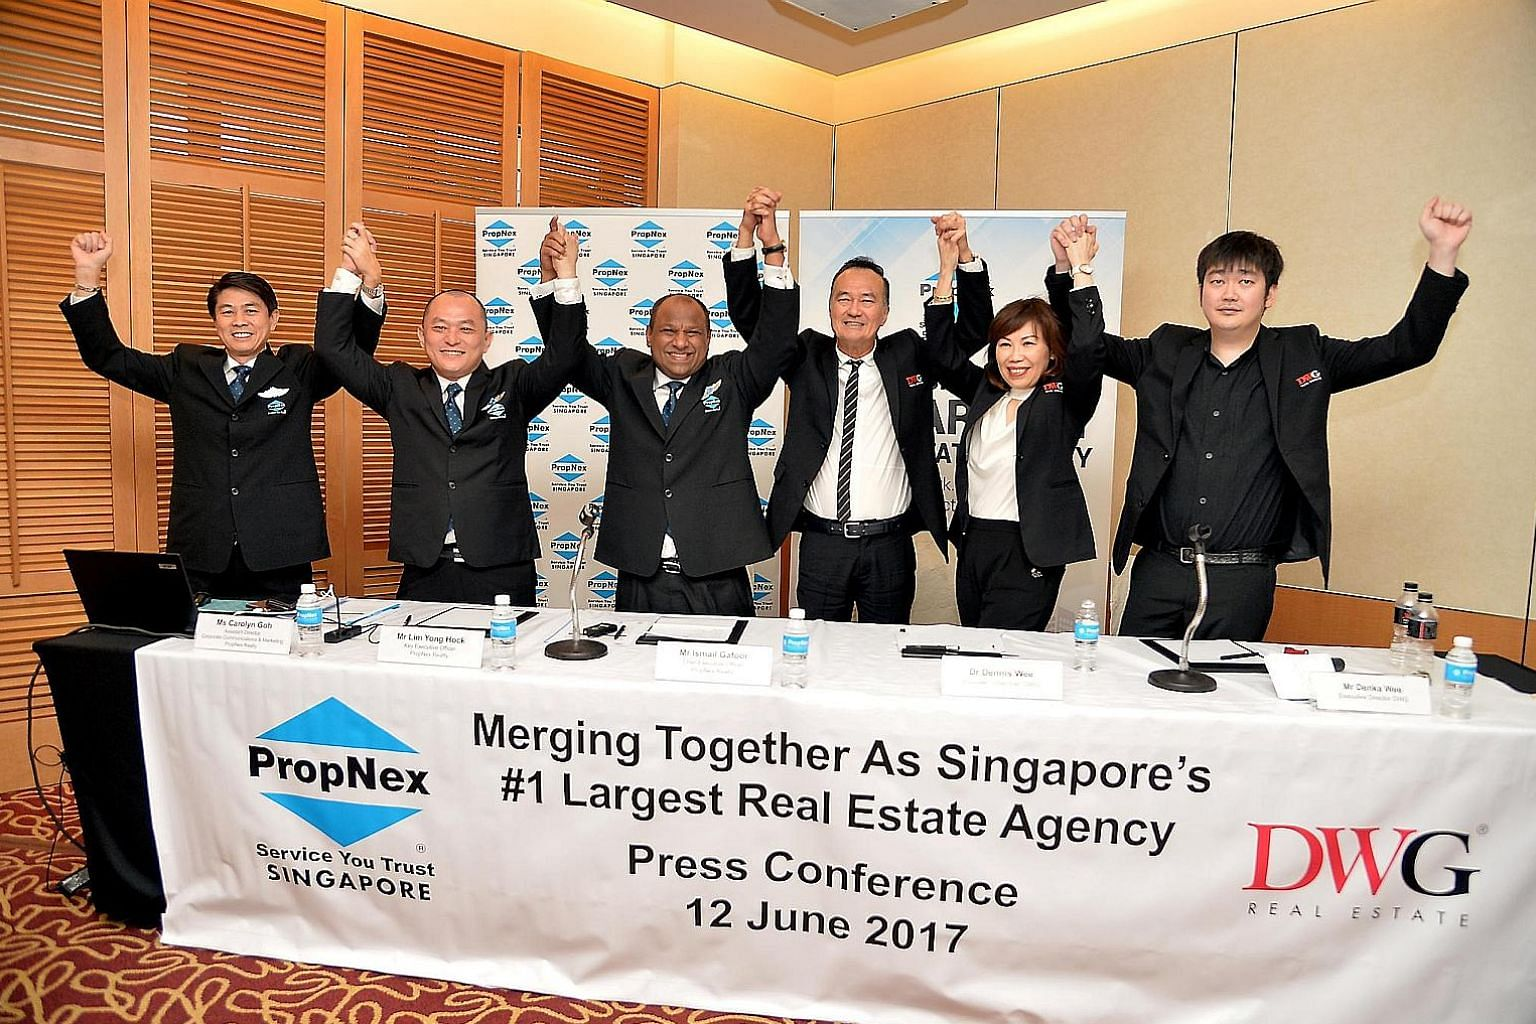 Celebrating the merger of their companies on June 12 last year were (from left) PropNex's director Alan Lim, key executive officer Lim Yong Hock, and CEO Ismail Gafoor, Dennis Wee Realty's founder Dennis Wee, its director Priska Wee, and executive di